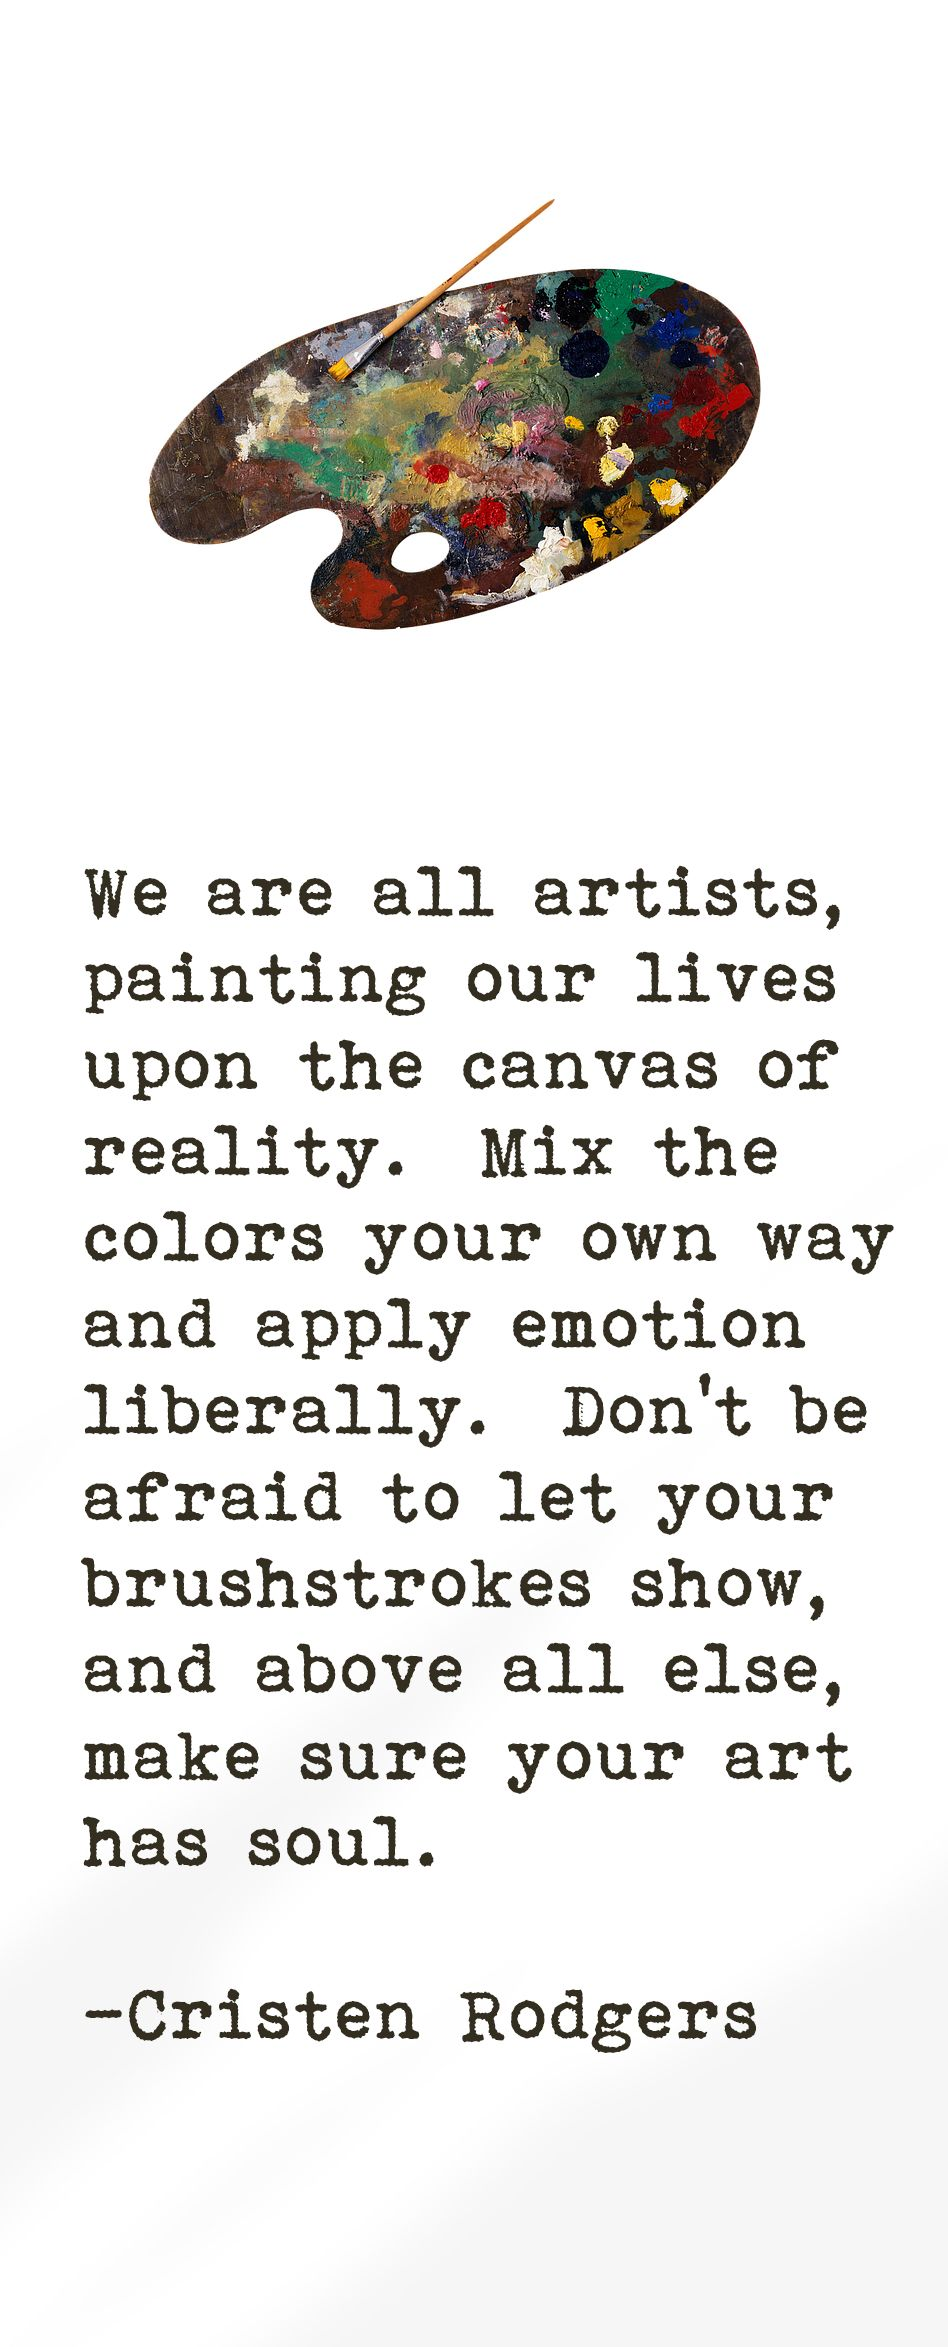 we are all artists, painting our lives upon the canvas of reality